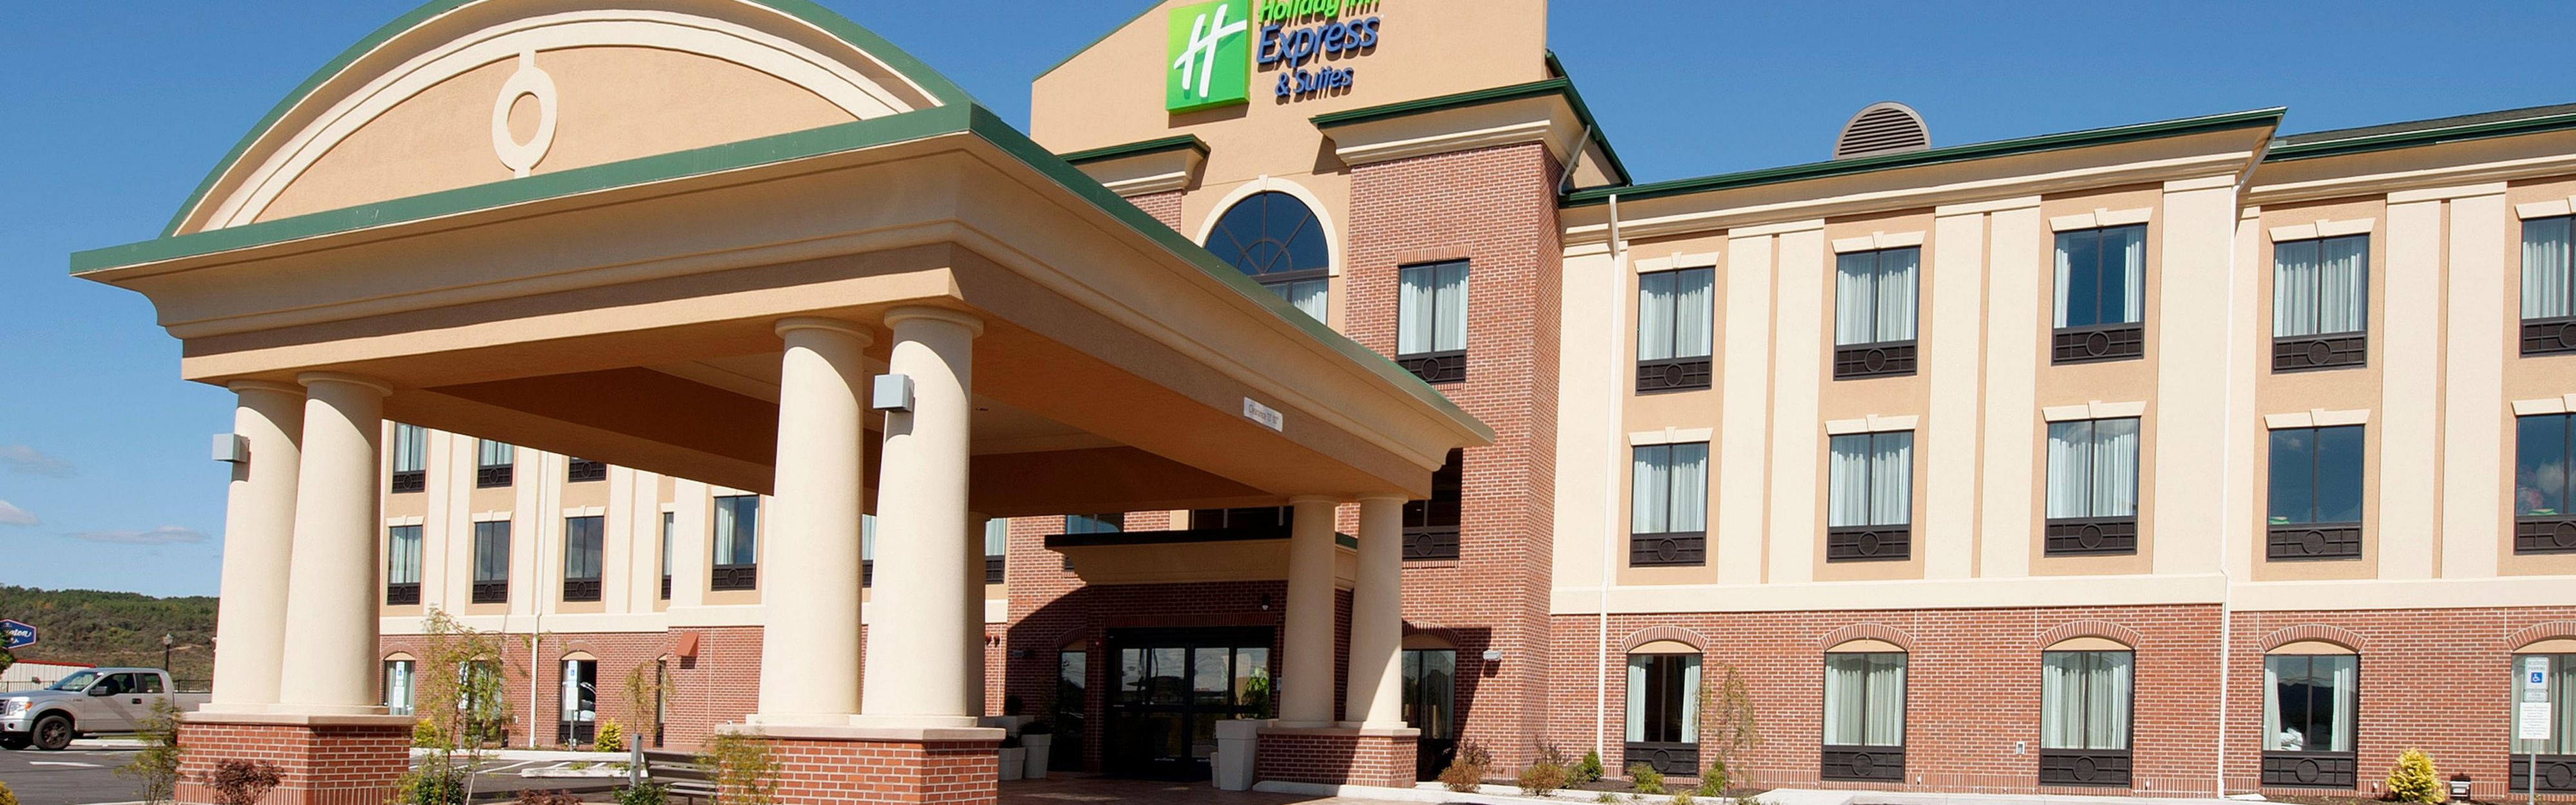 Hotels Near Clearfield Pa